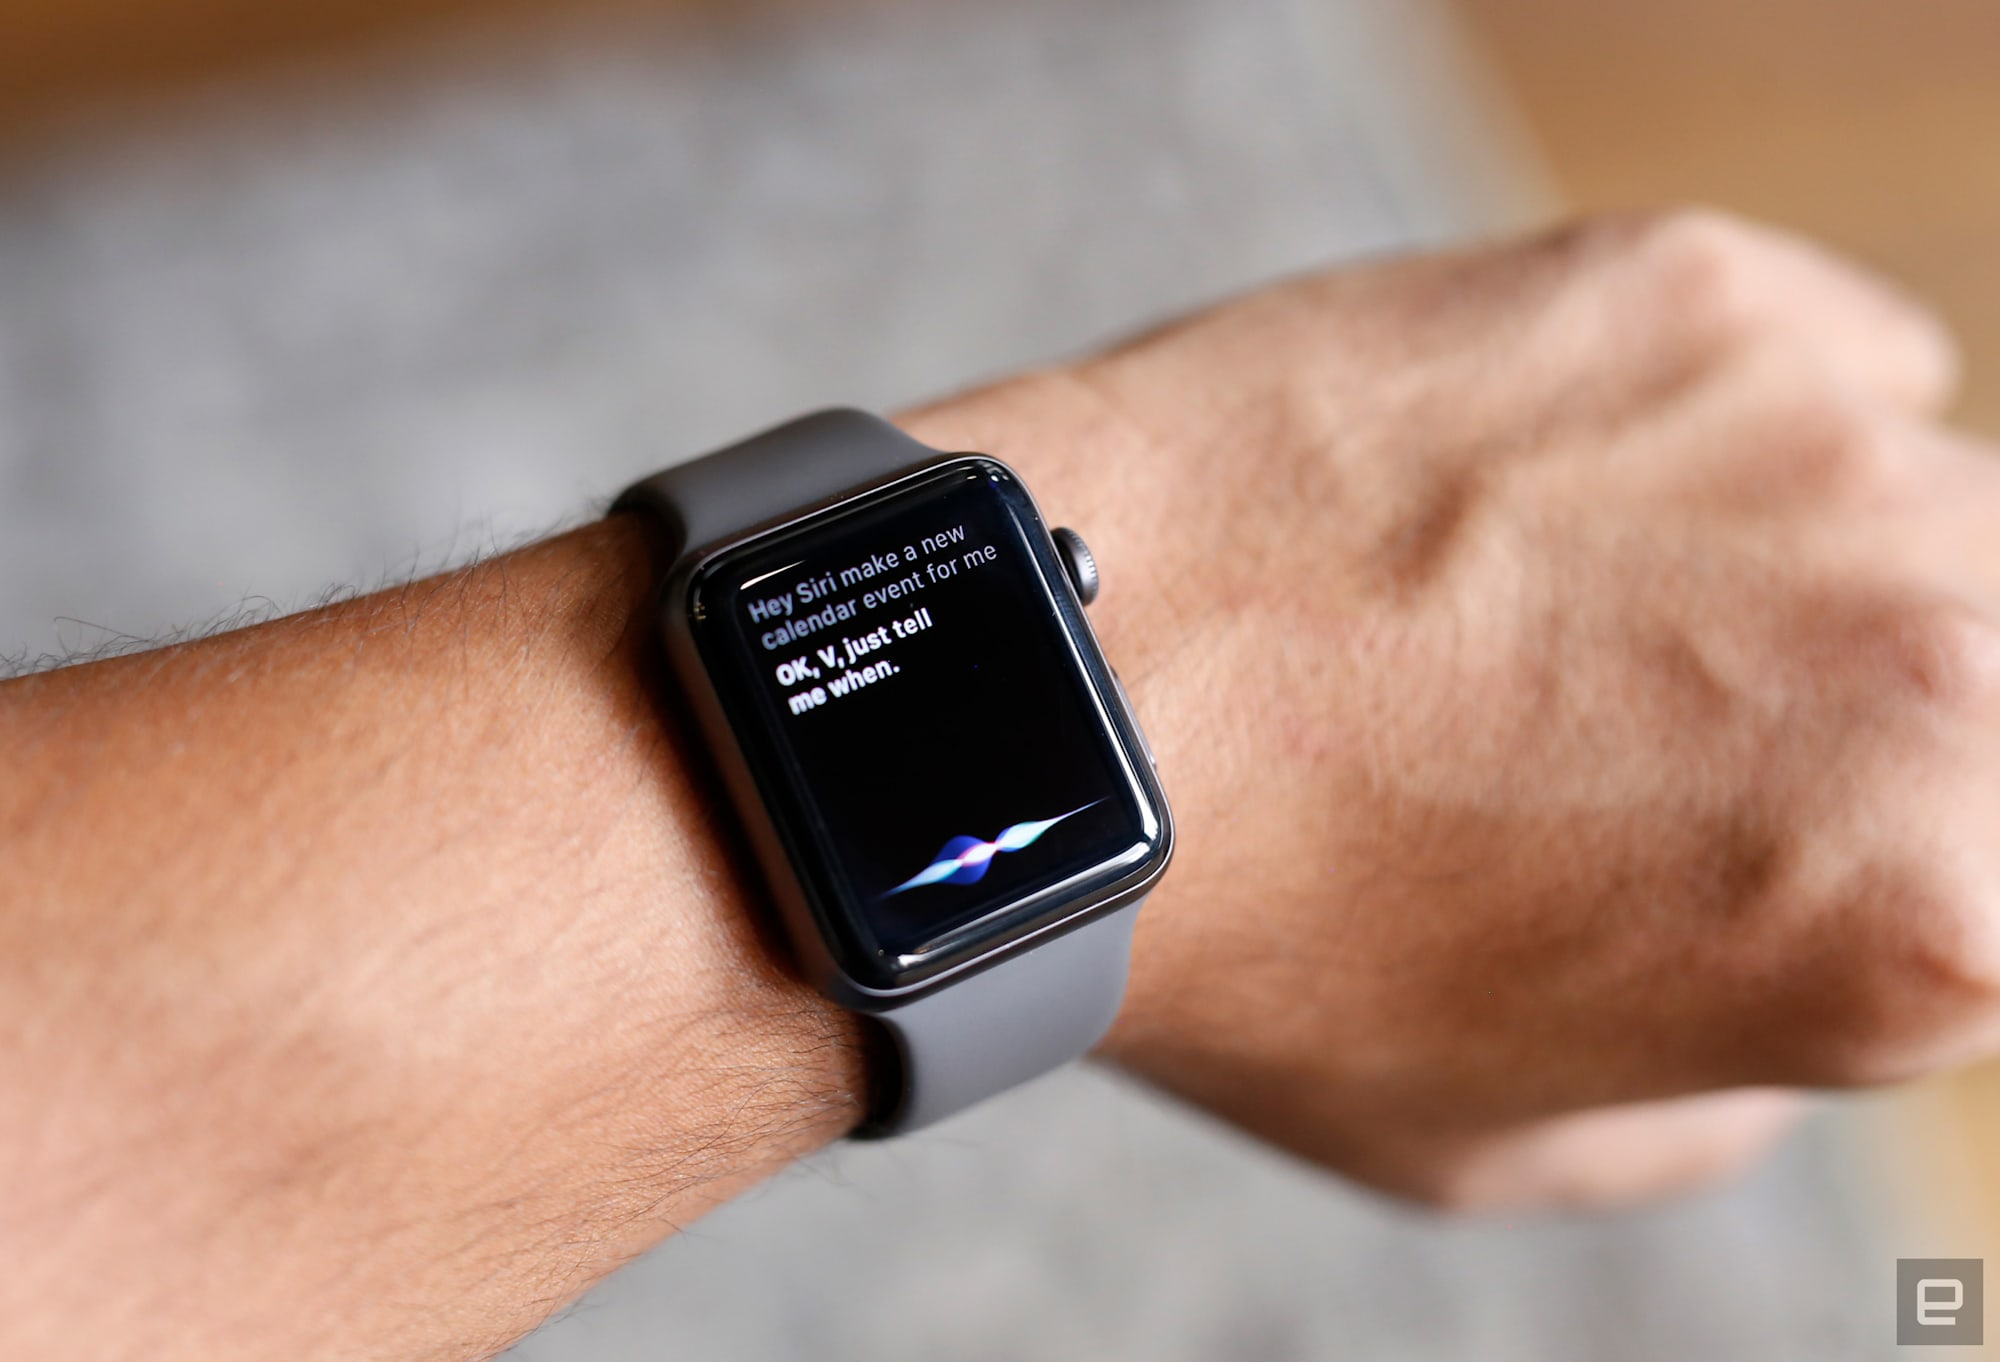 vs watches the should you for apple news watch best techradar which phone i buy is